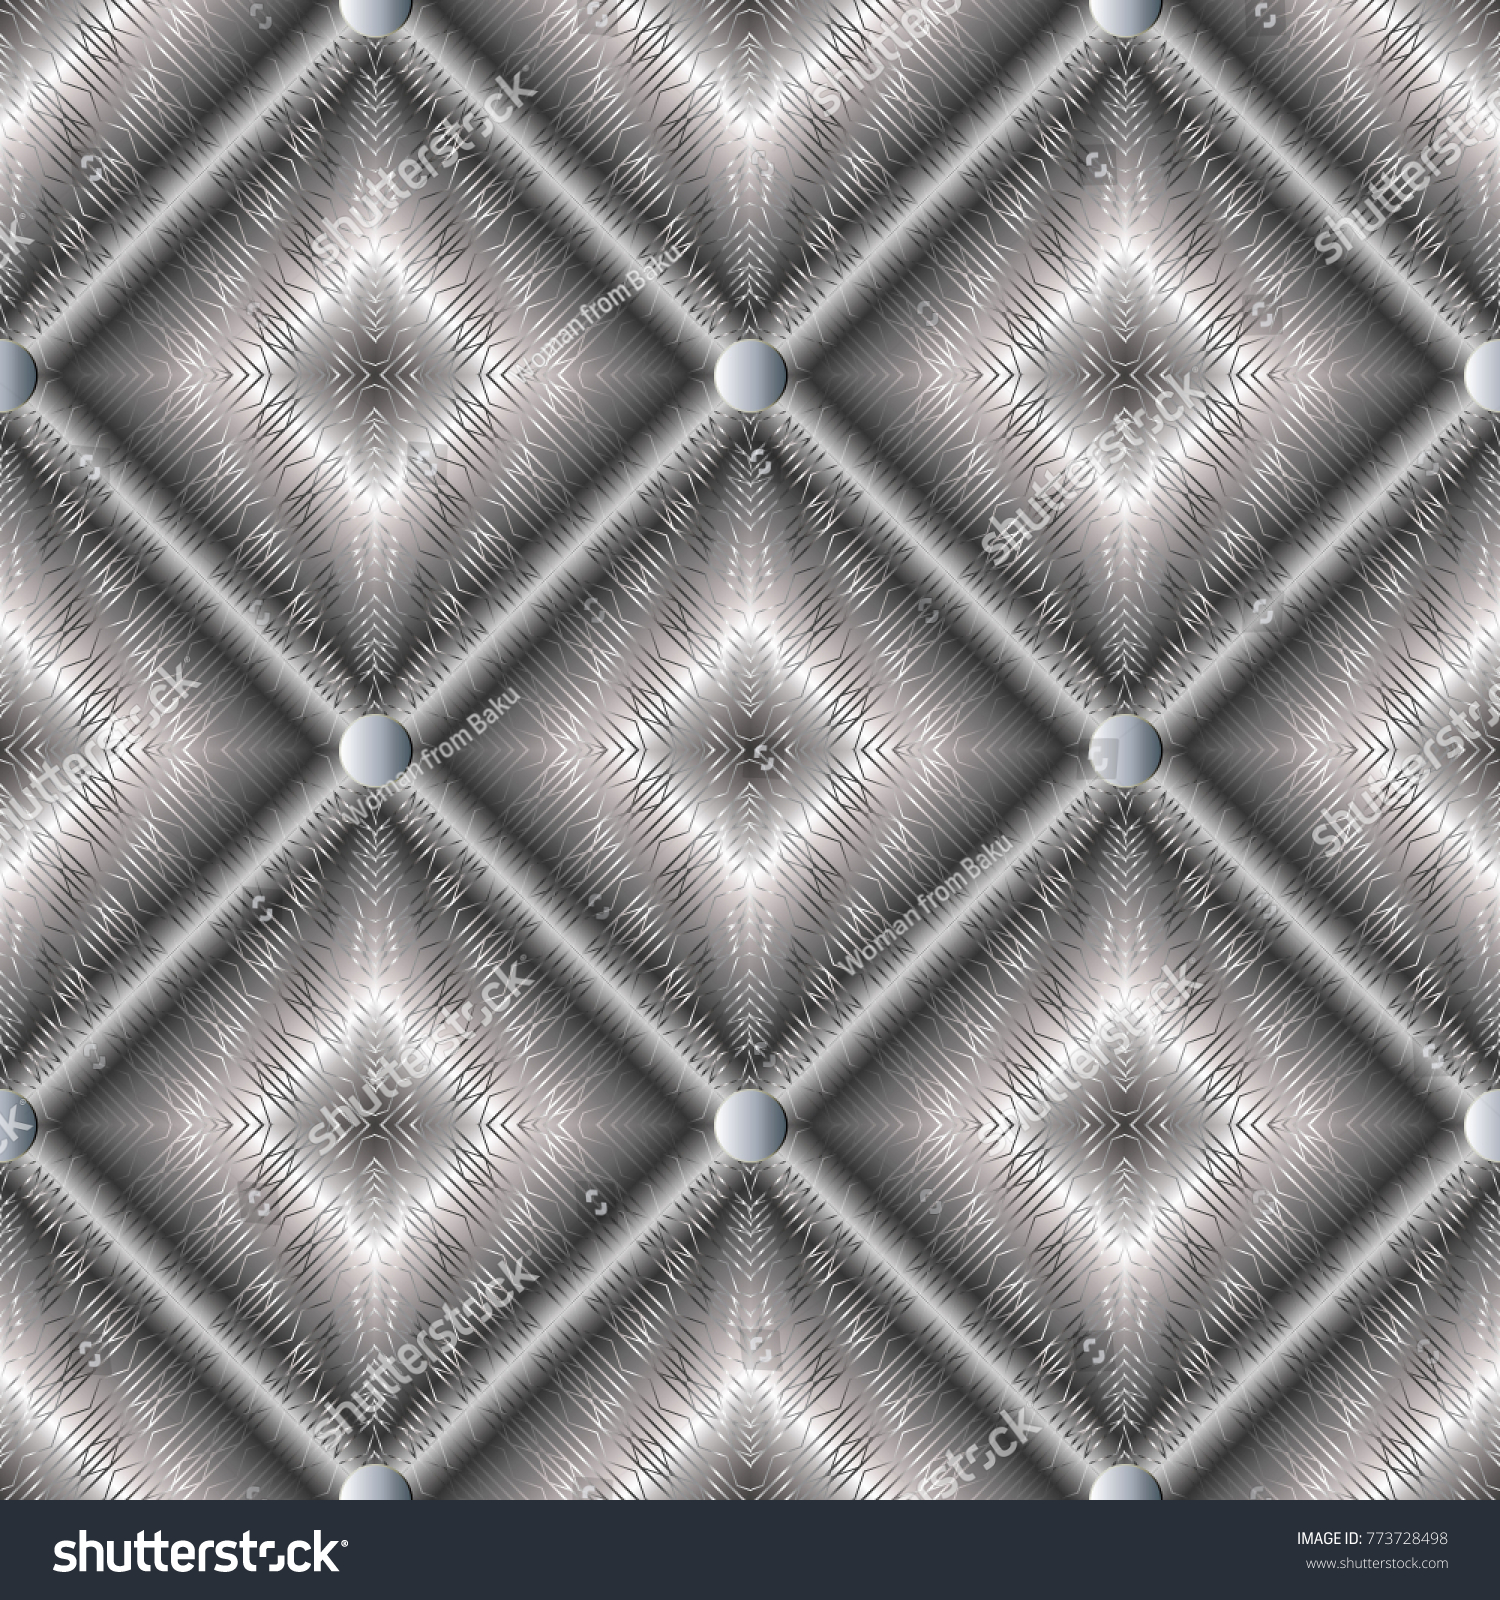 Modern Geometric Silver 3d Seamless Pattern Abstract Striped Lattice Backgroind Vector Surface Endless Texture